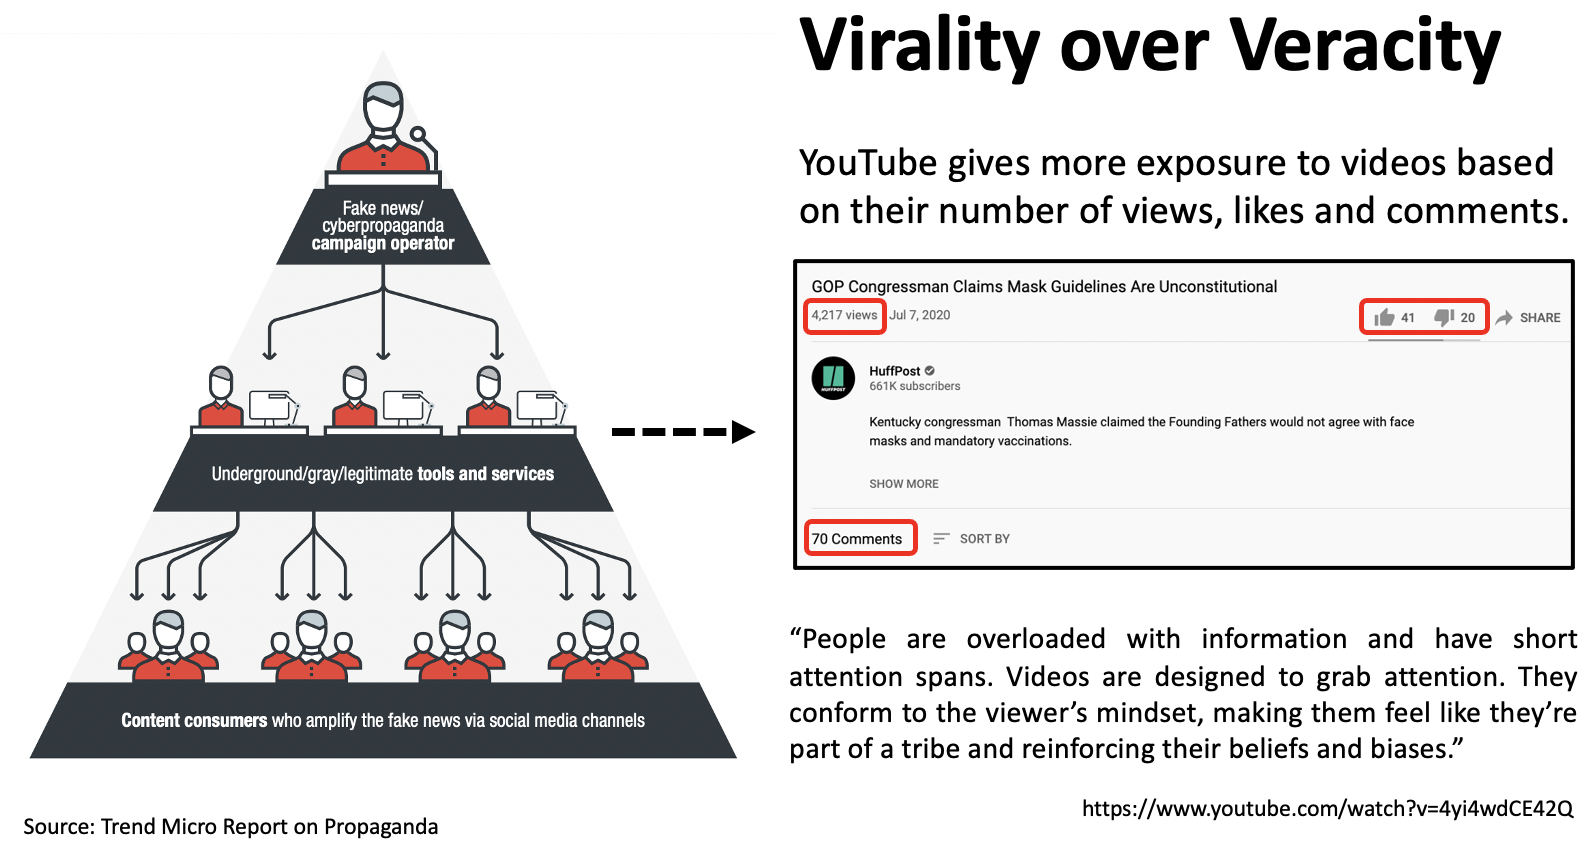 YouTube profits from videos being viral than being factual. Virality over veracity.